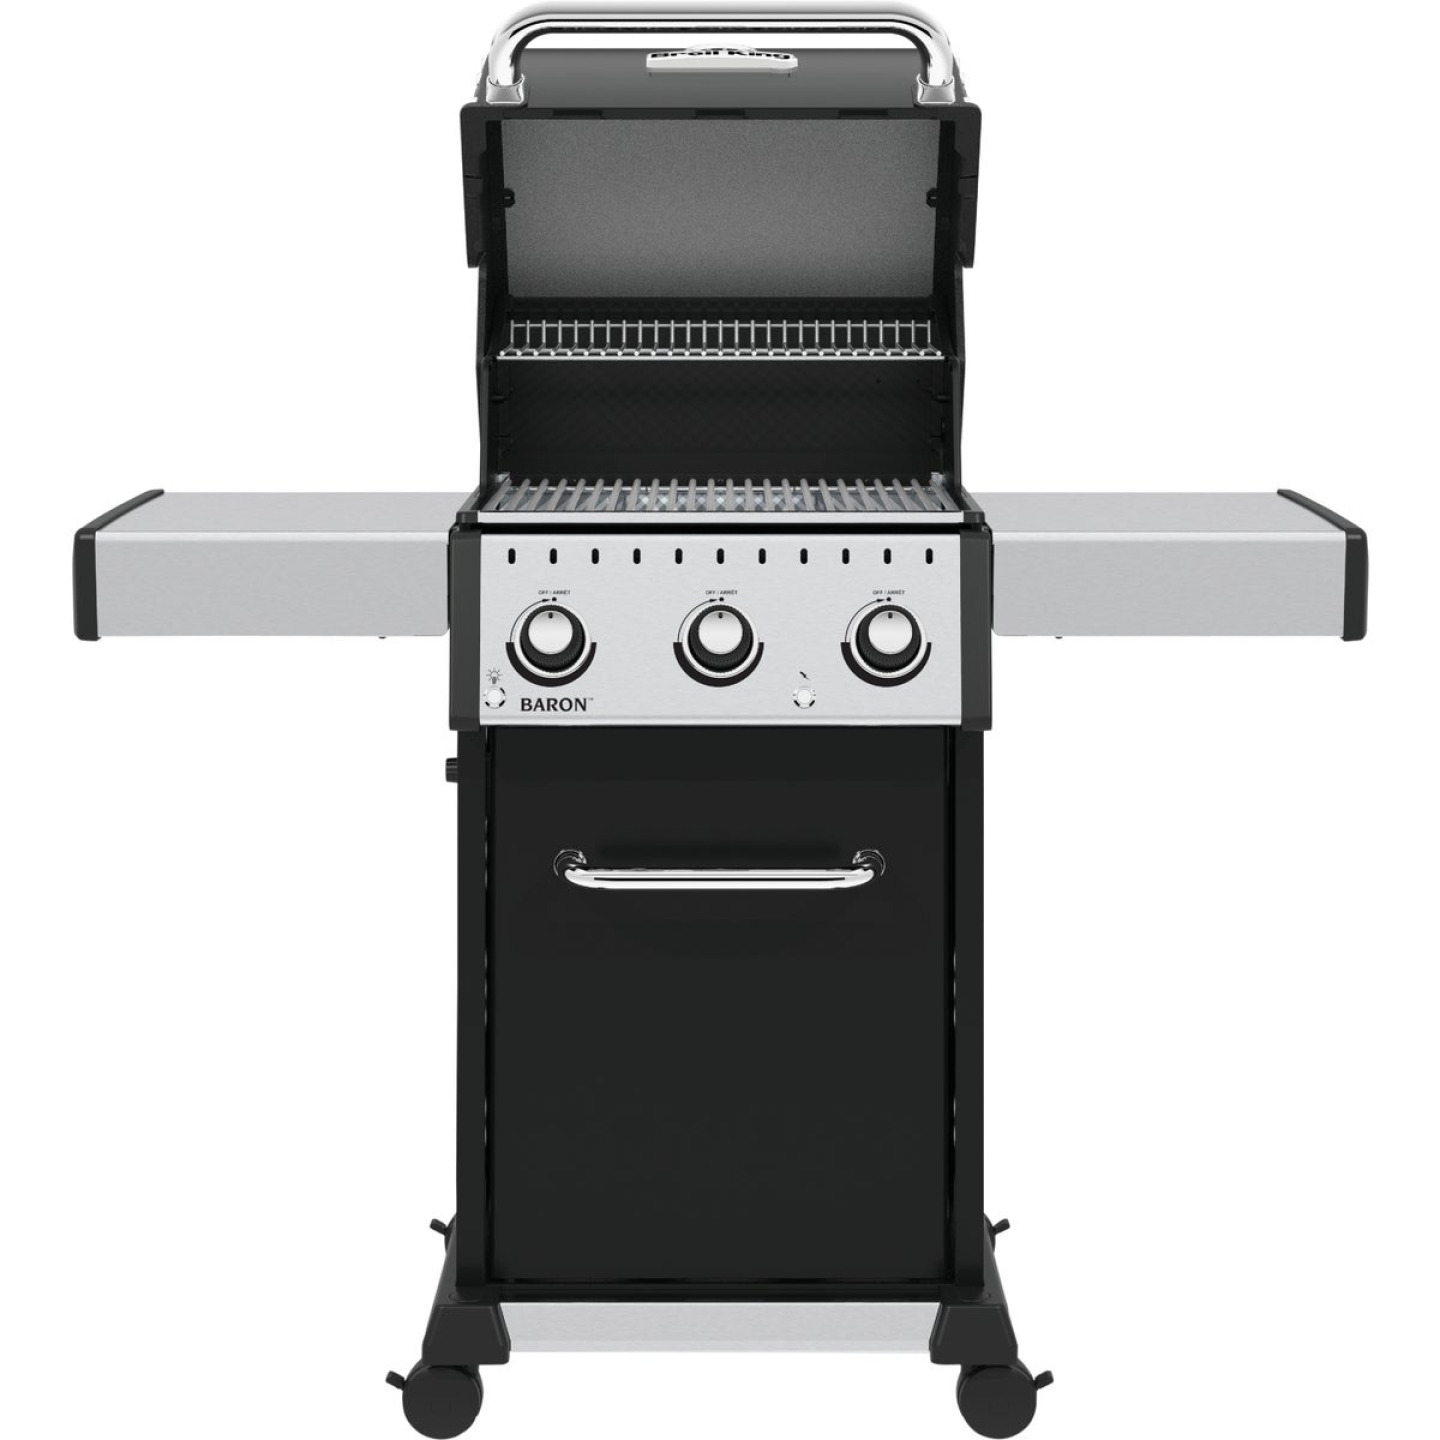 Broil King Baron 320 Pro 3-Burner Black 32,000 BTU LP Gas Grill Image 5